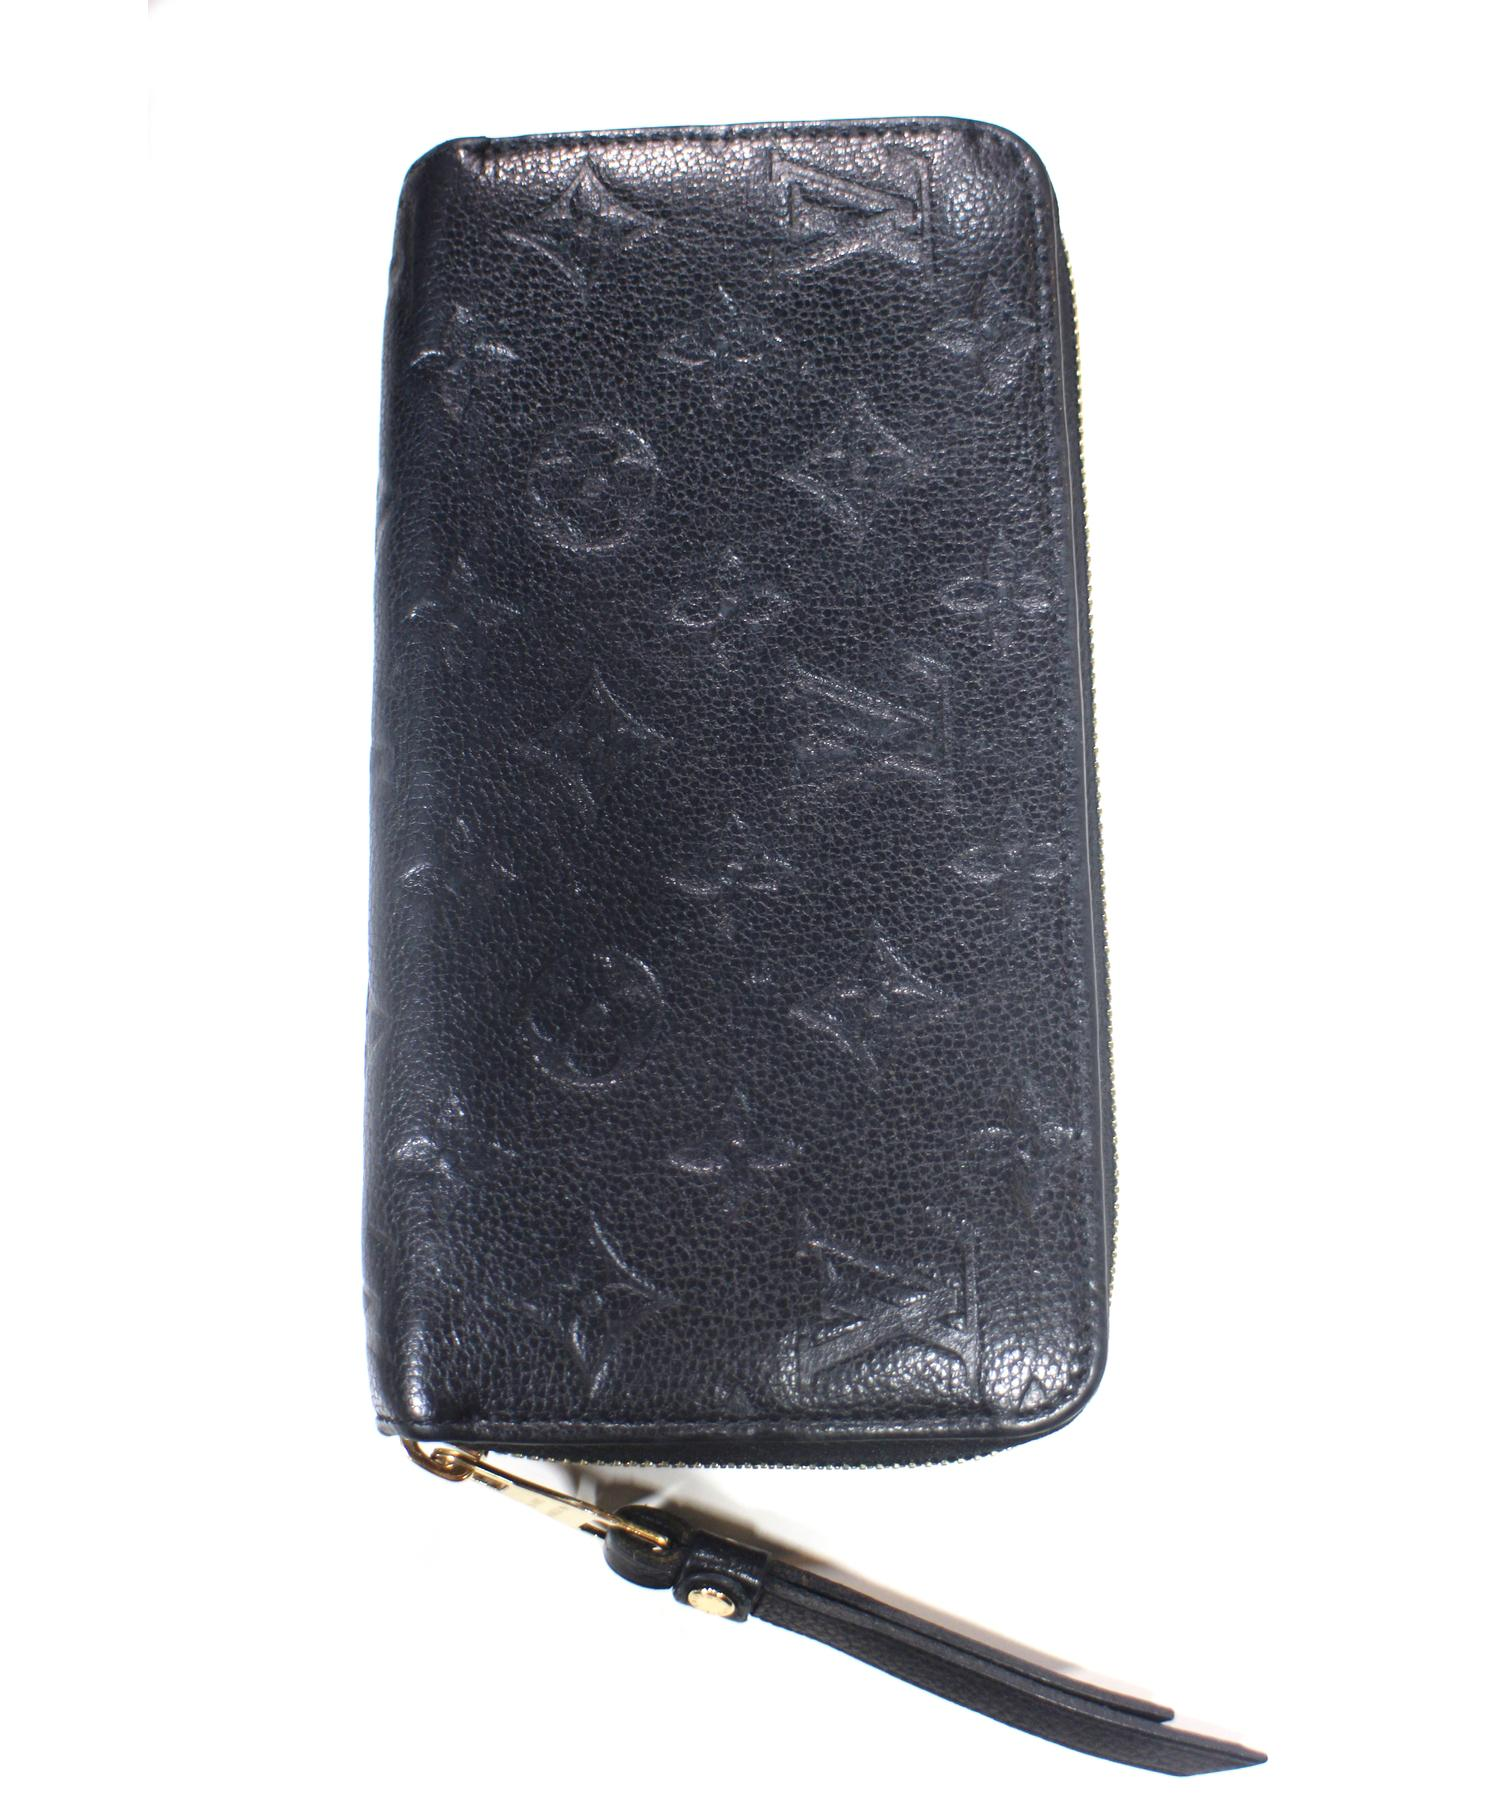 check out 057ce c6eae 中古・古着通販】LOUIS VUITTON (ルイヴィトン) モノグラム ...